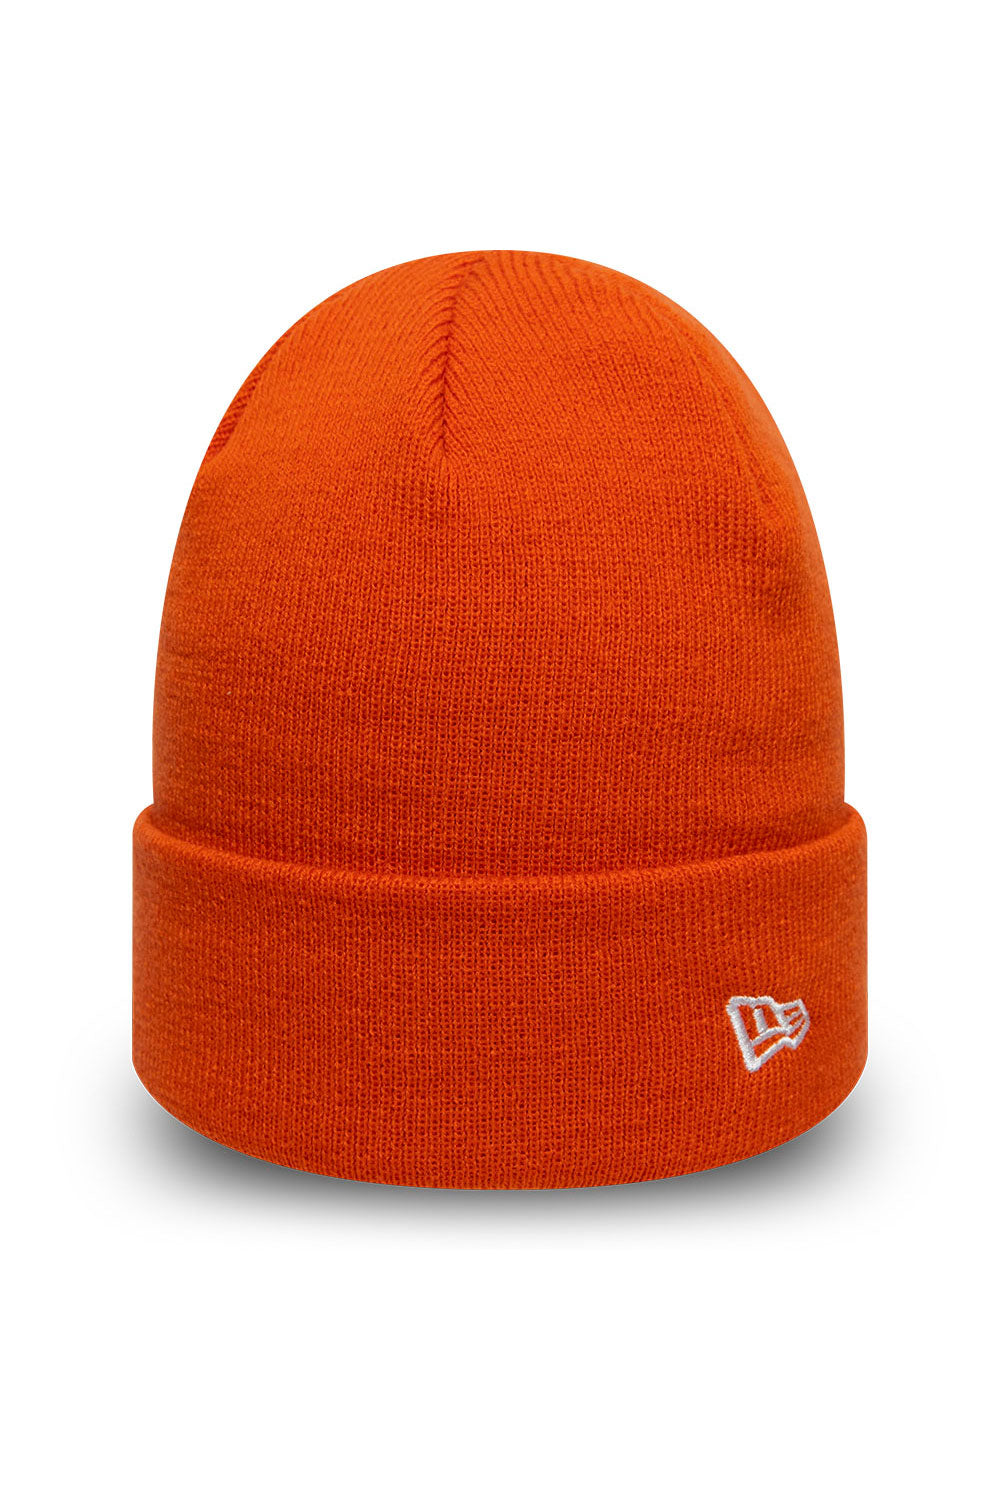 NEW ERA ESSENTIAL ORANGE KNIT